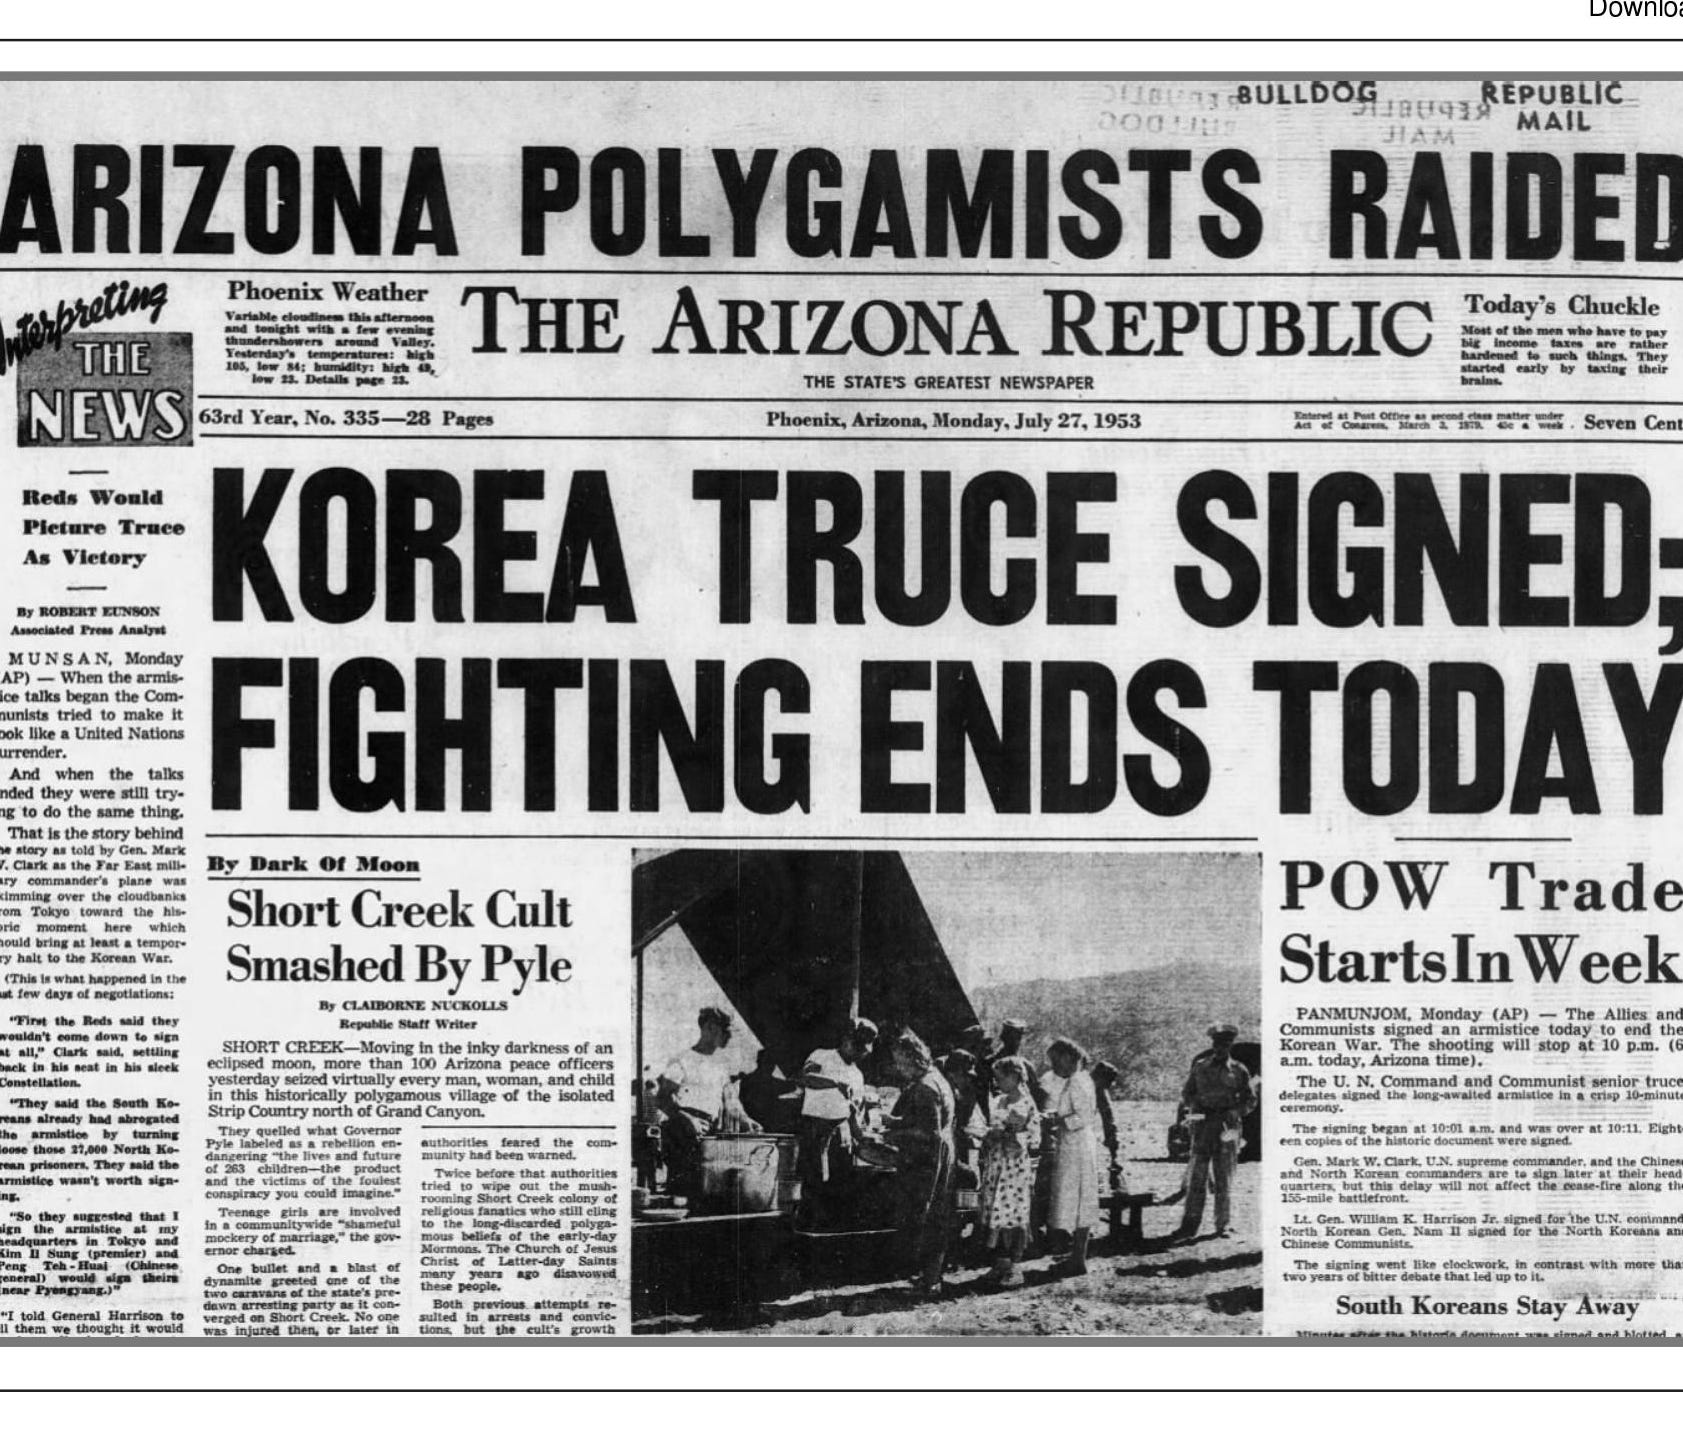 A copy of the front page of The Arizona Republic on July 27, 1953, following the raid on Short Creek.